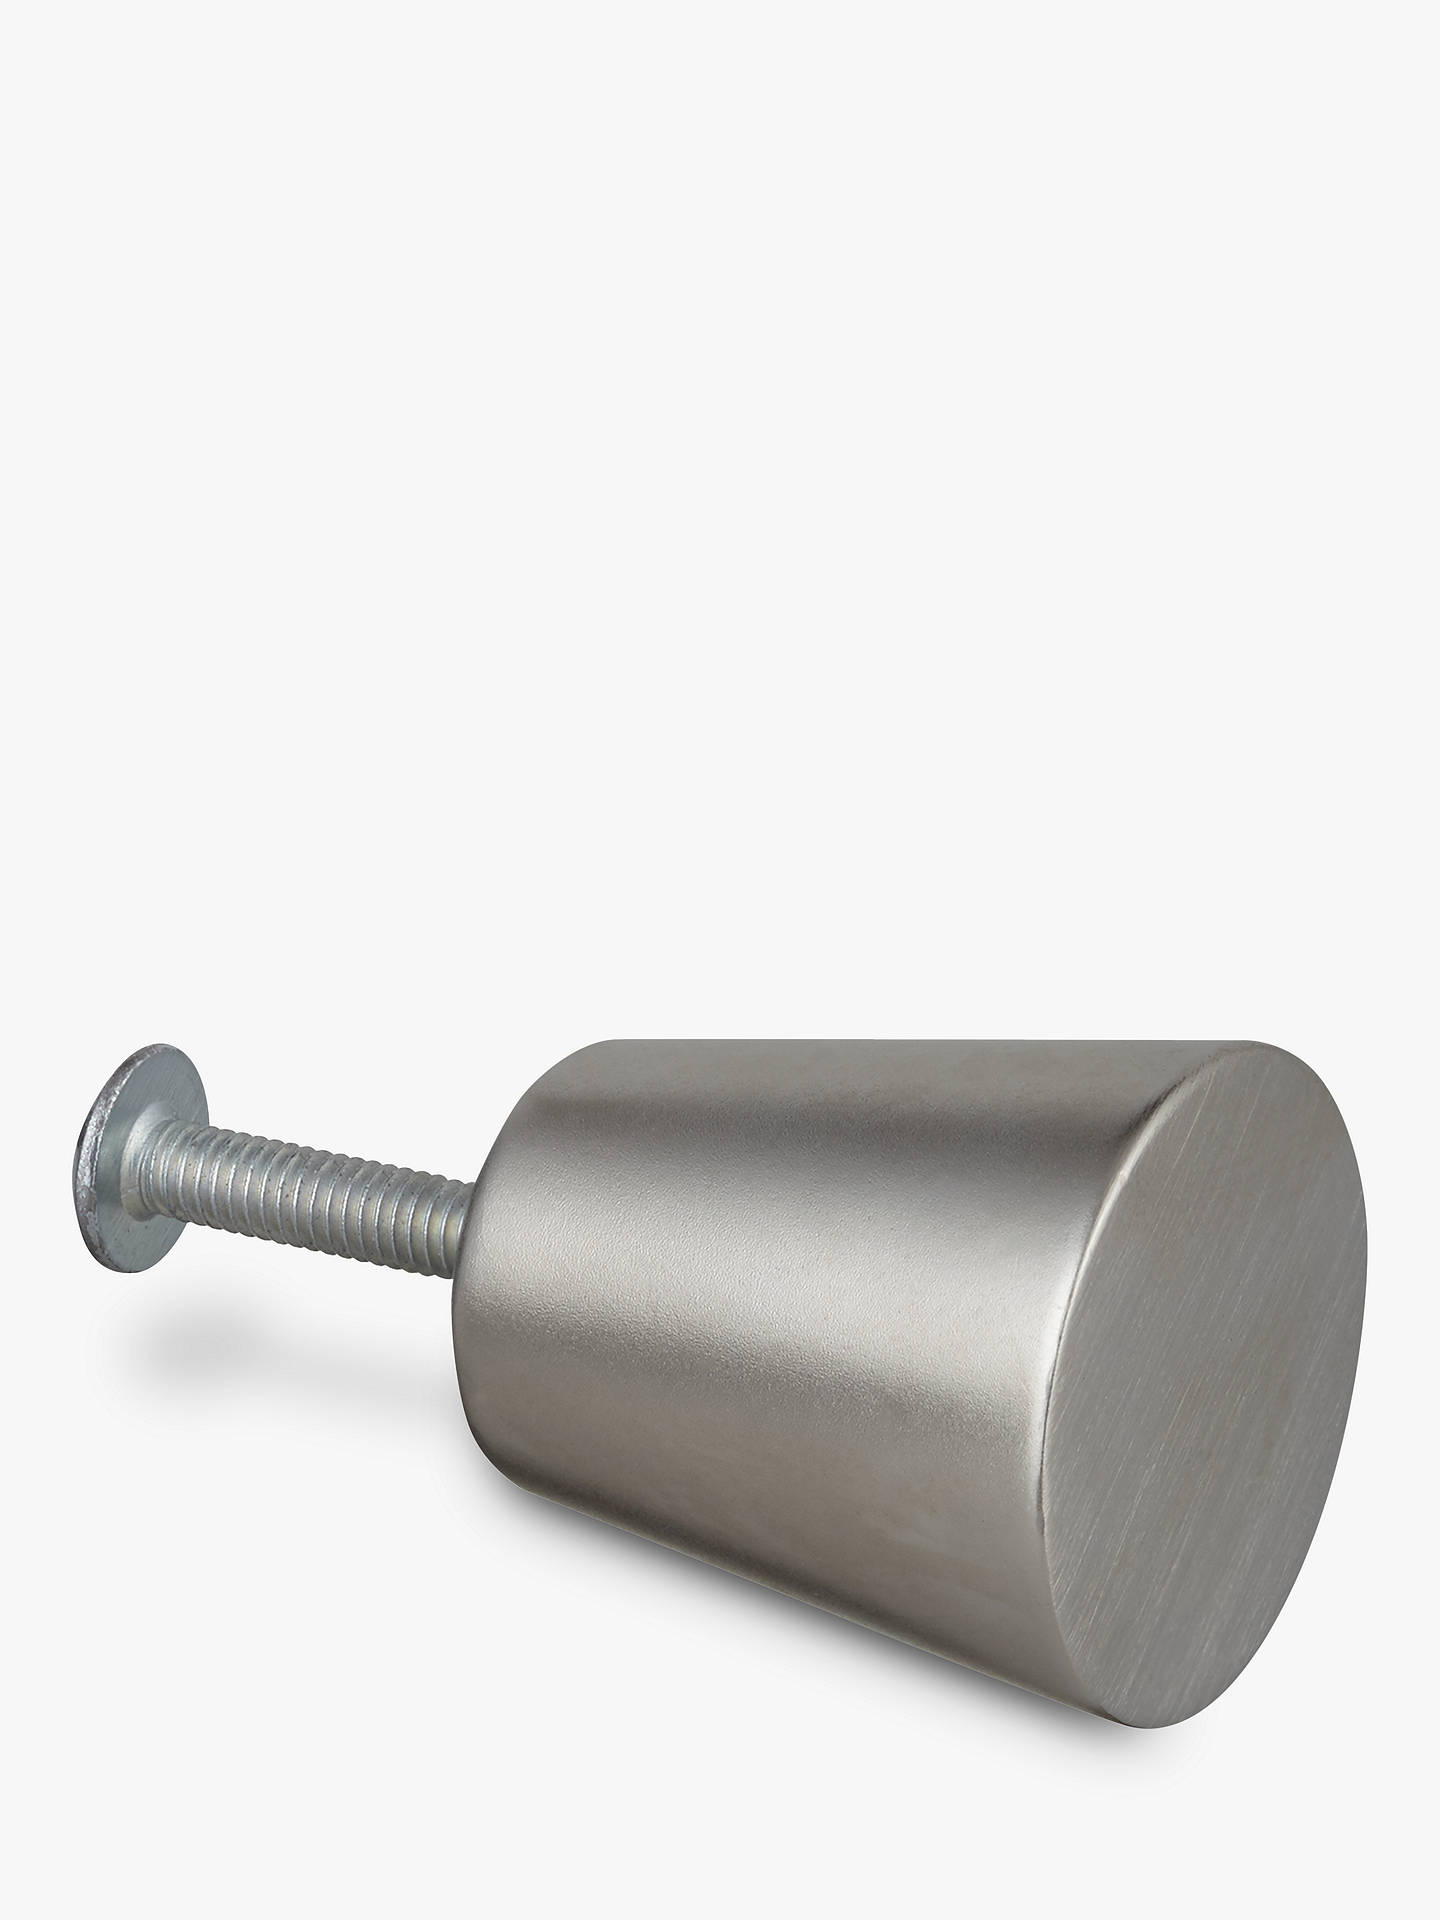 Buy Design Project by John Lewis No.072 Cupboard Knob, 25mm, Brushed Nickel Online at johnlewis.com